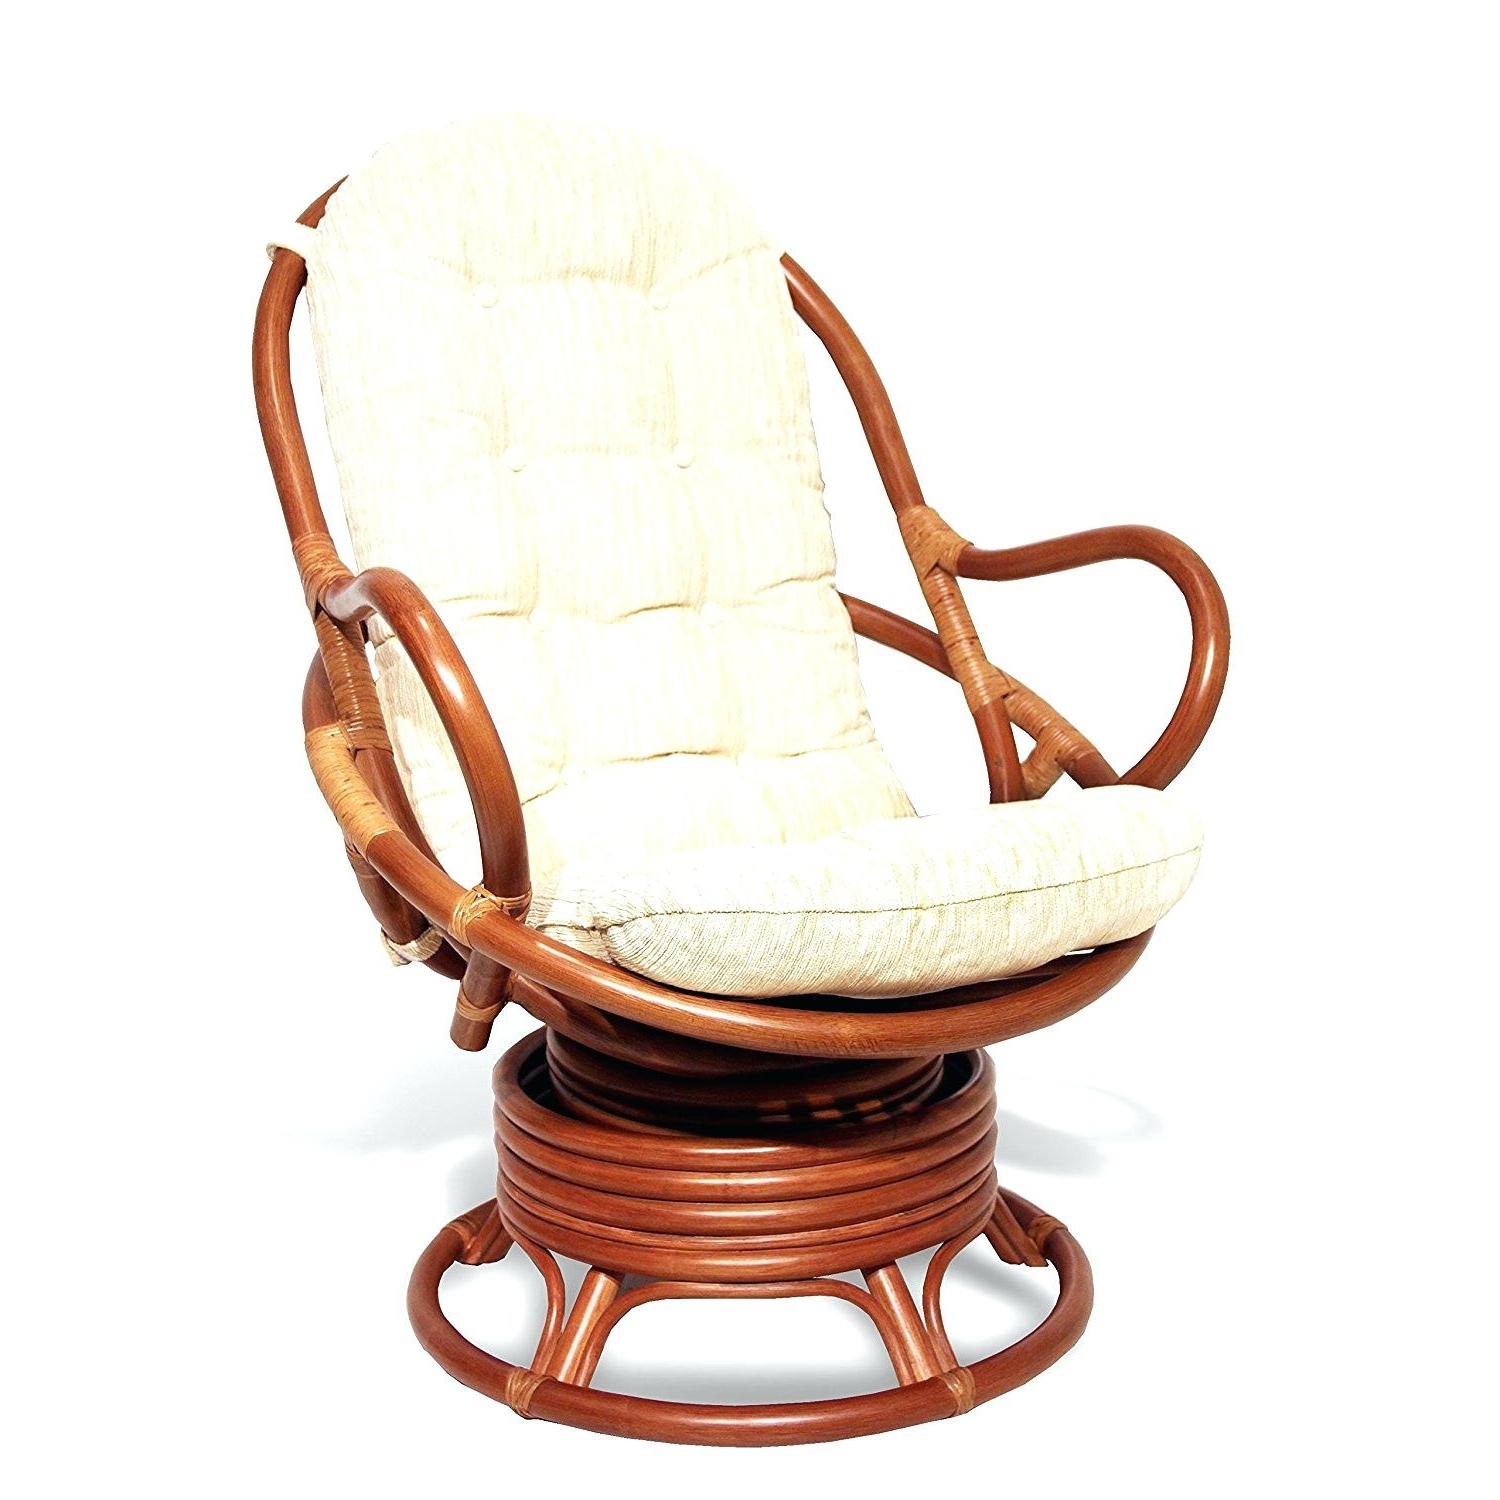 Outdoor Wicker Rocking Chairs With Cushions With Regard To Well Known Cushion : Wicker Rocking Chair Followfirefish Com Cushions Cushion (View 11 of 15)